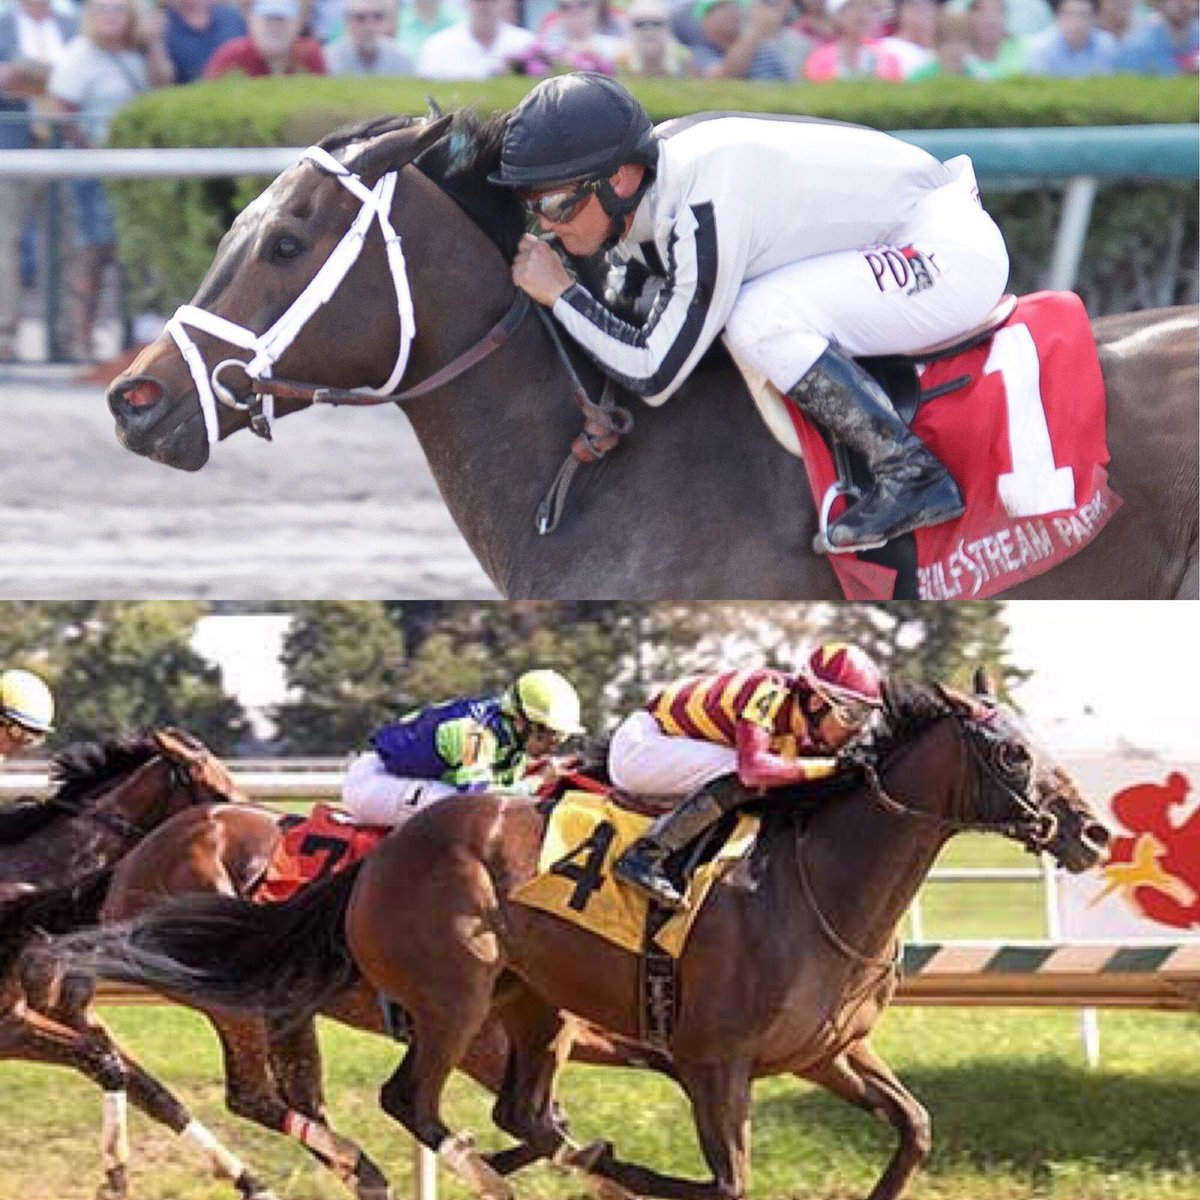 test Twitter Media - BSW Private Purchase (IVY BELL) won the G2 Inside Information 1 year ago. A great day for Mathis Family and Madaket Stables with @MaggieSweetTAP. Today we have CAIRENN going in the same race, for Heider Family, Madaket, Kisber @GrahamMotion. Thanks to all the great connections. https://t.co/S15VRIrsye